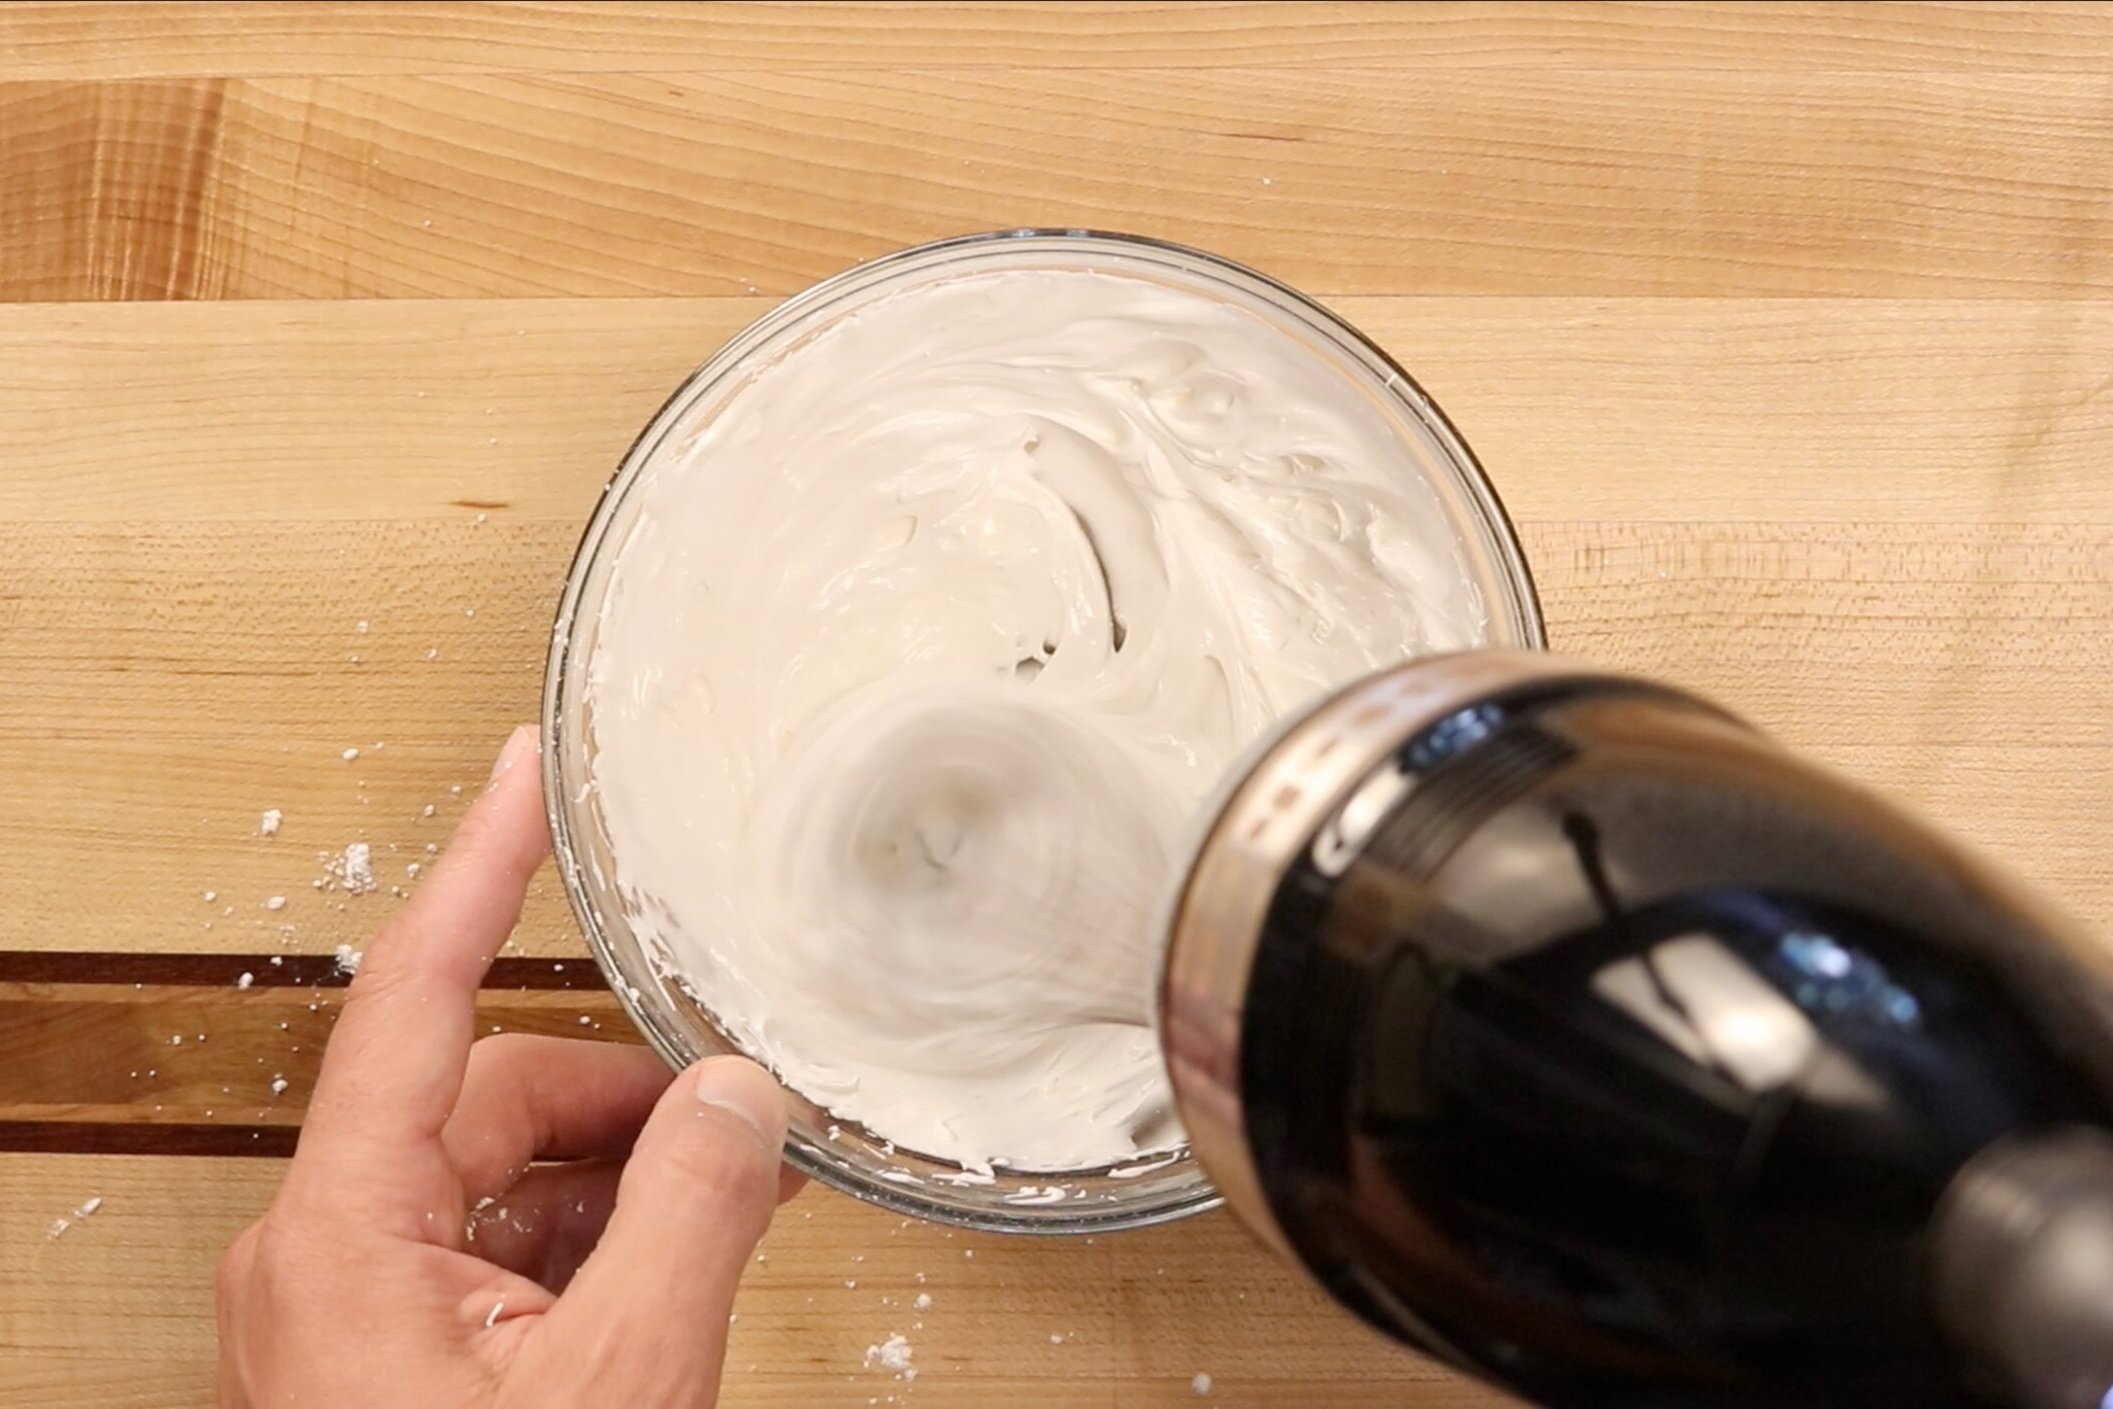 17. Add the vanilla and most of the water. Mix on low speed until incorporated. Then mix on medium high speed for 2-3 minutes until icing is thick and glossy. Add more water if needed. -